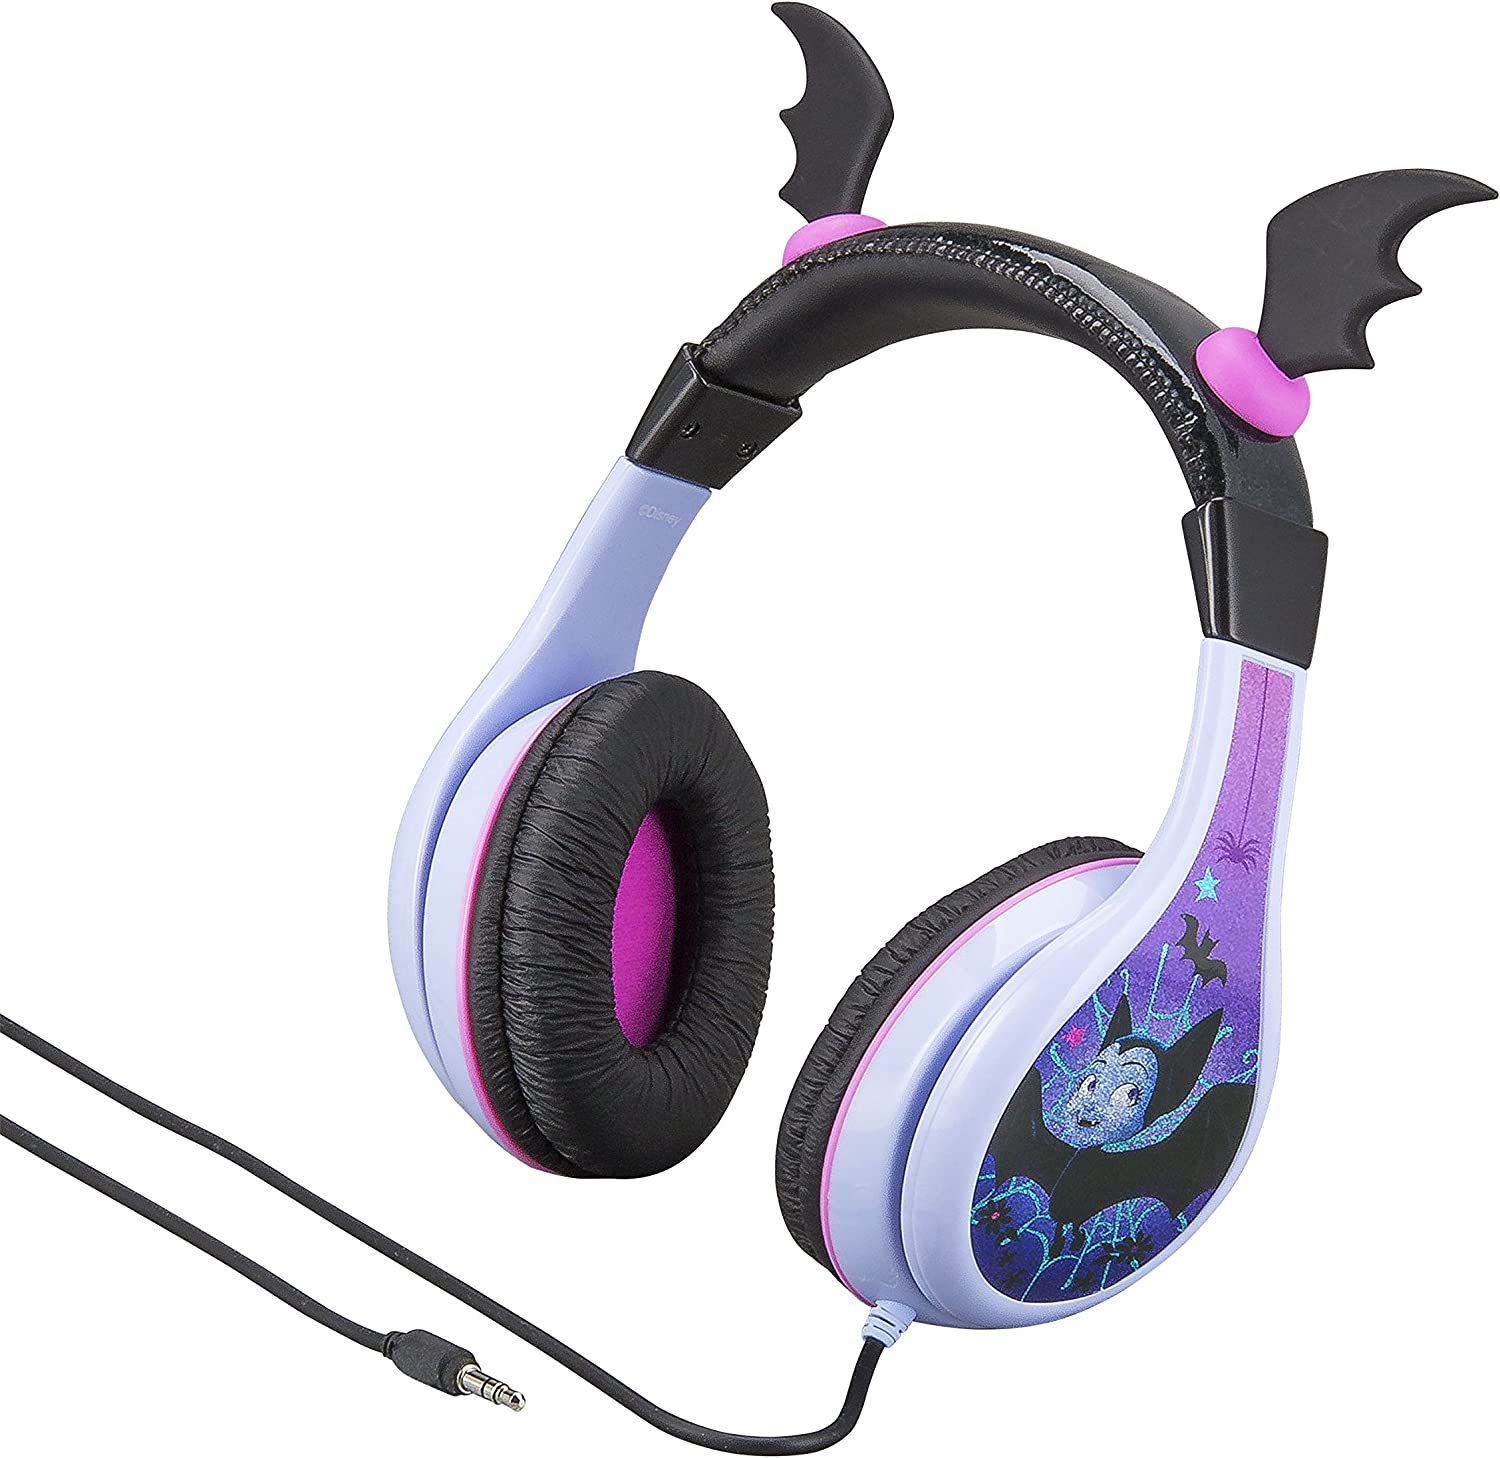 Vampirina Headphones for Kids with Built in Volume Limiting Feature for Kid Friendly Safe Listening for Halloween